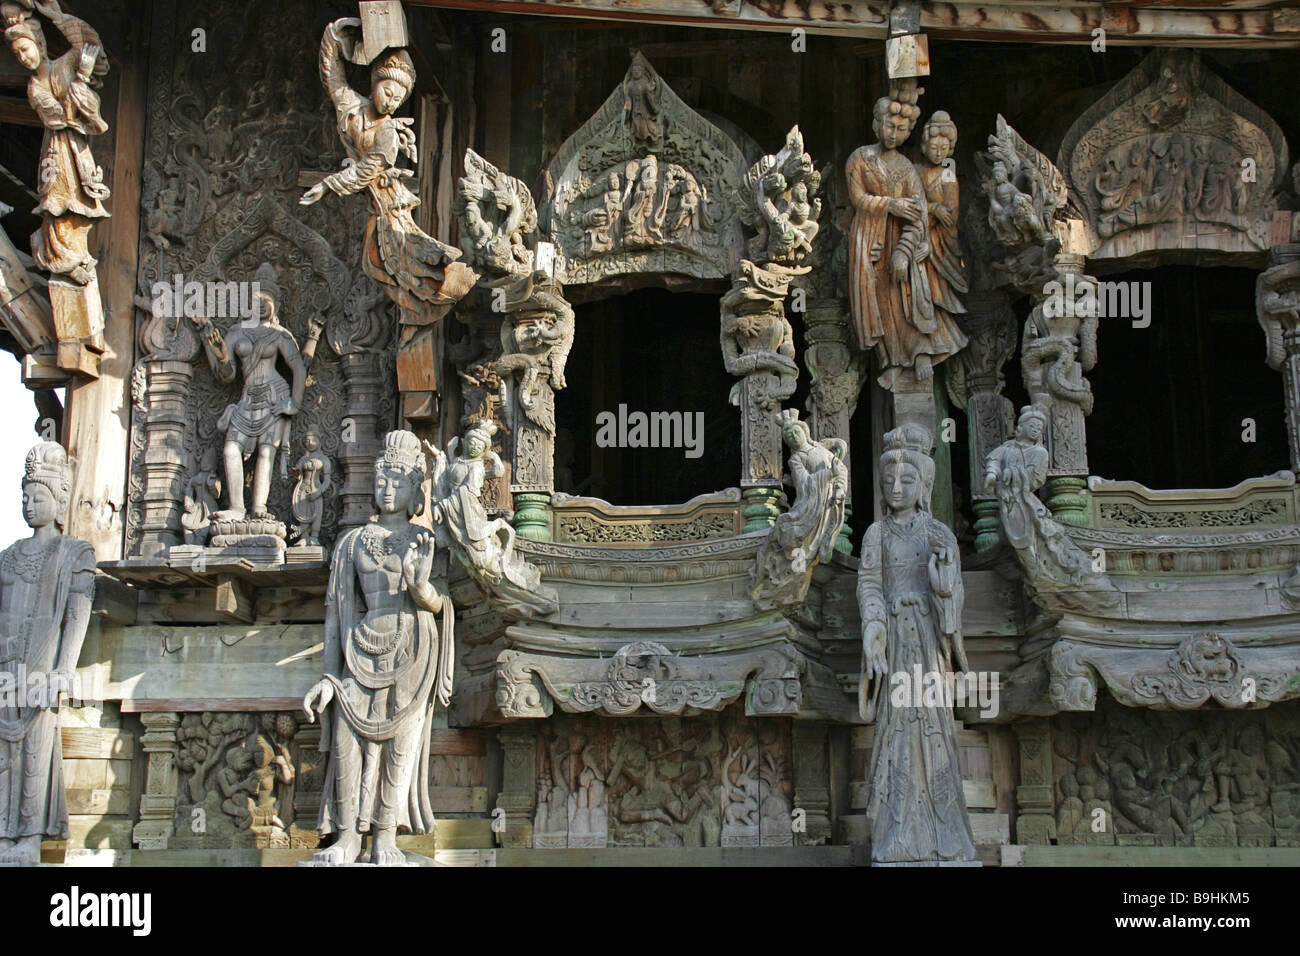 Thailand Pattaya Wood Temples Sanctuary Of Truth Facade Detail Architecture Asian Asia Reception 2006 Outside